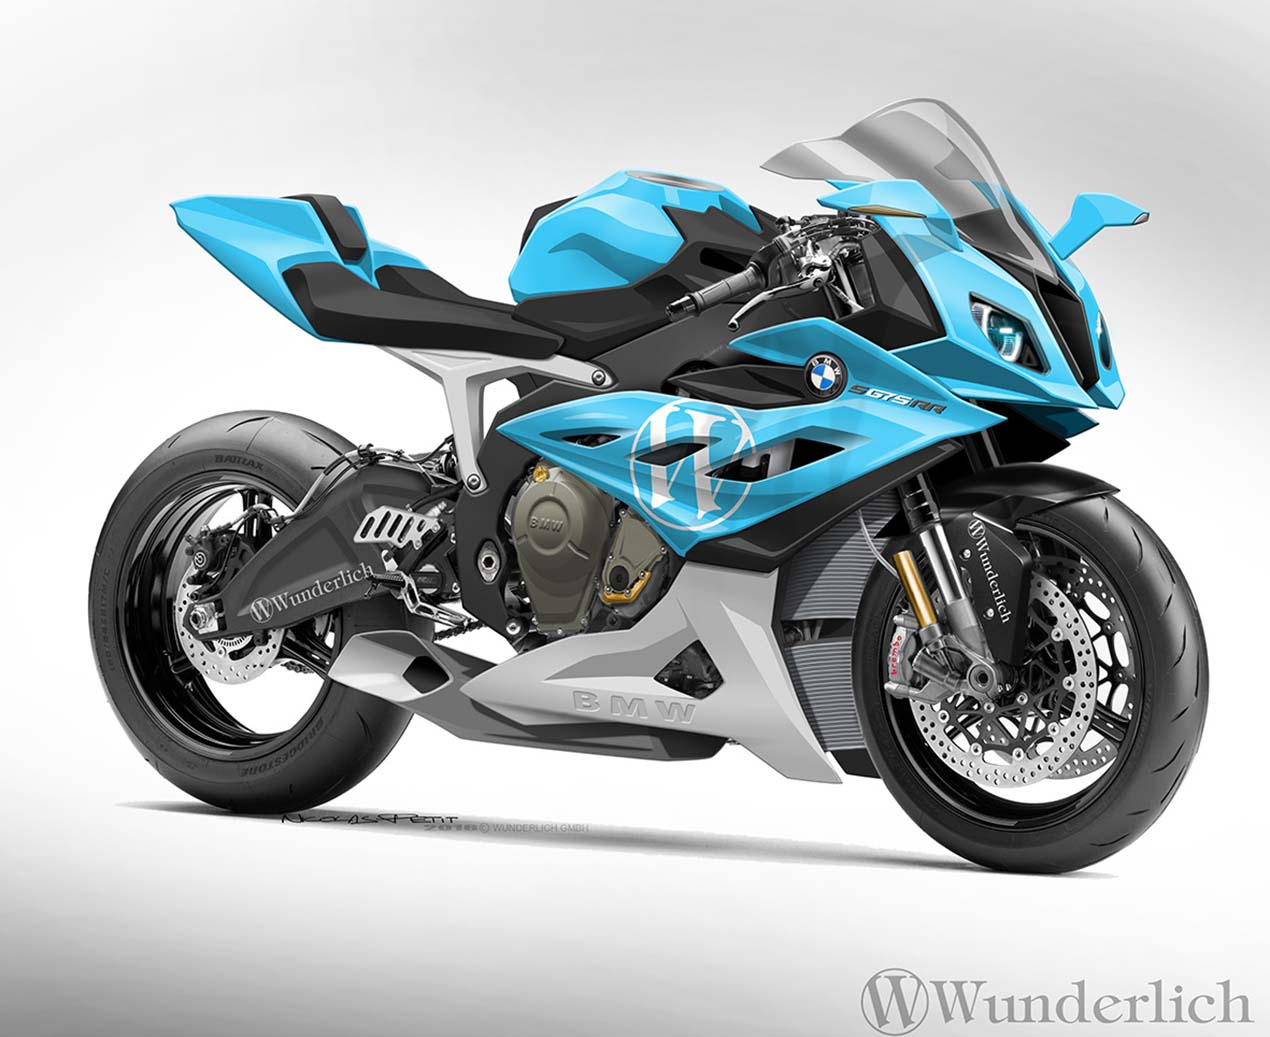 Bmw Sport Bike >> Bmw Plans To Launch Nine New Motorcycles Asphalt Rubber